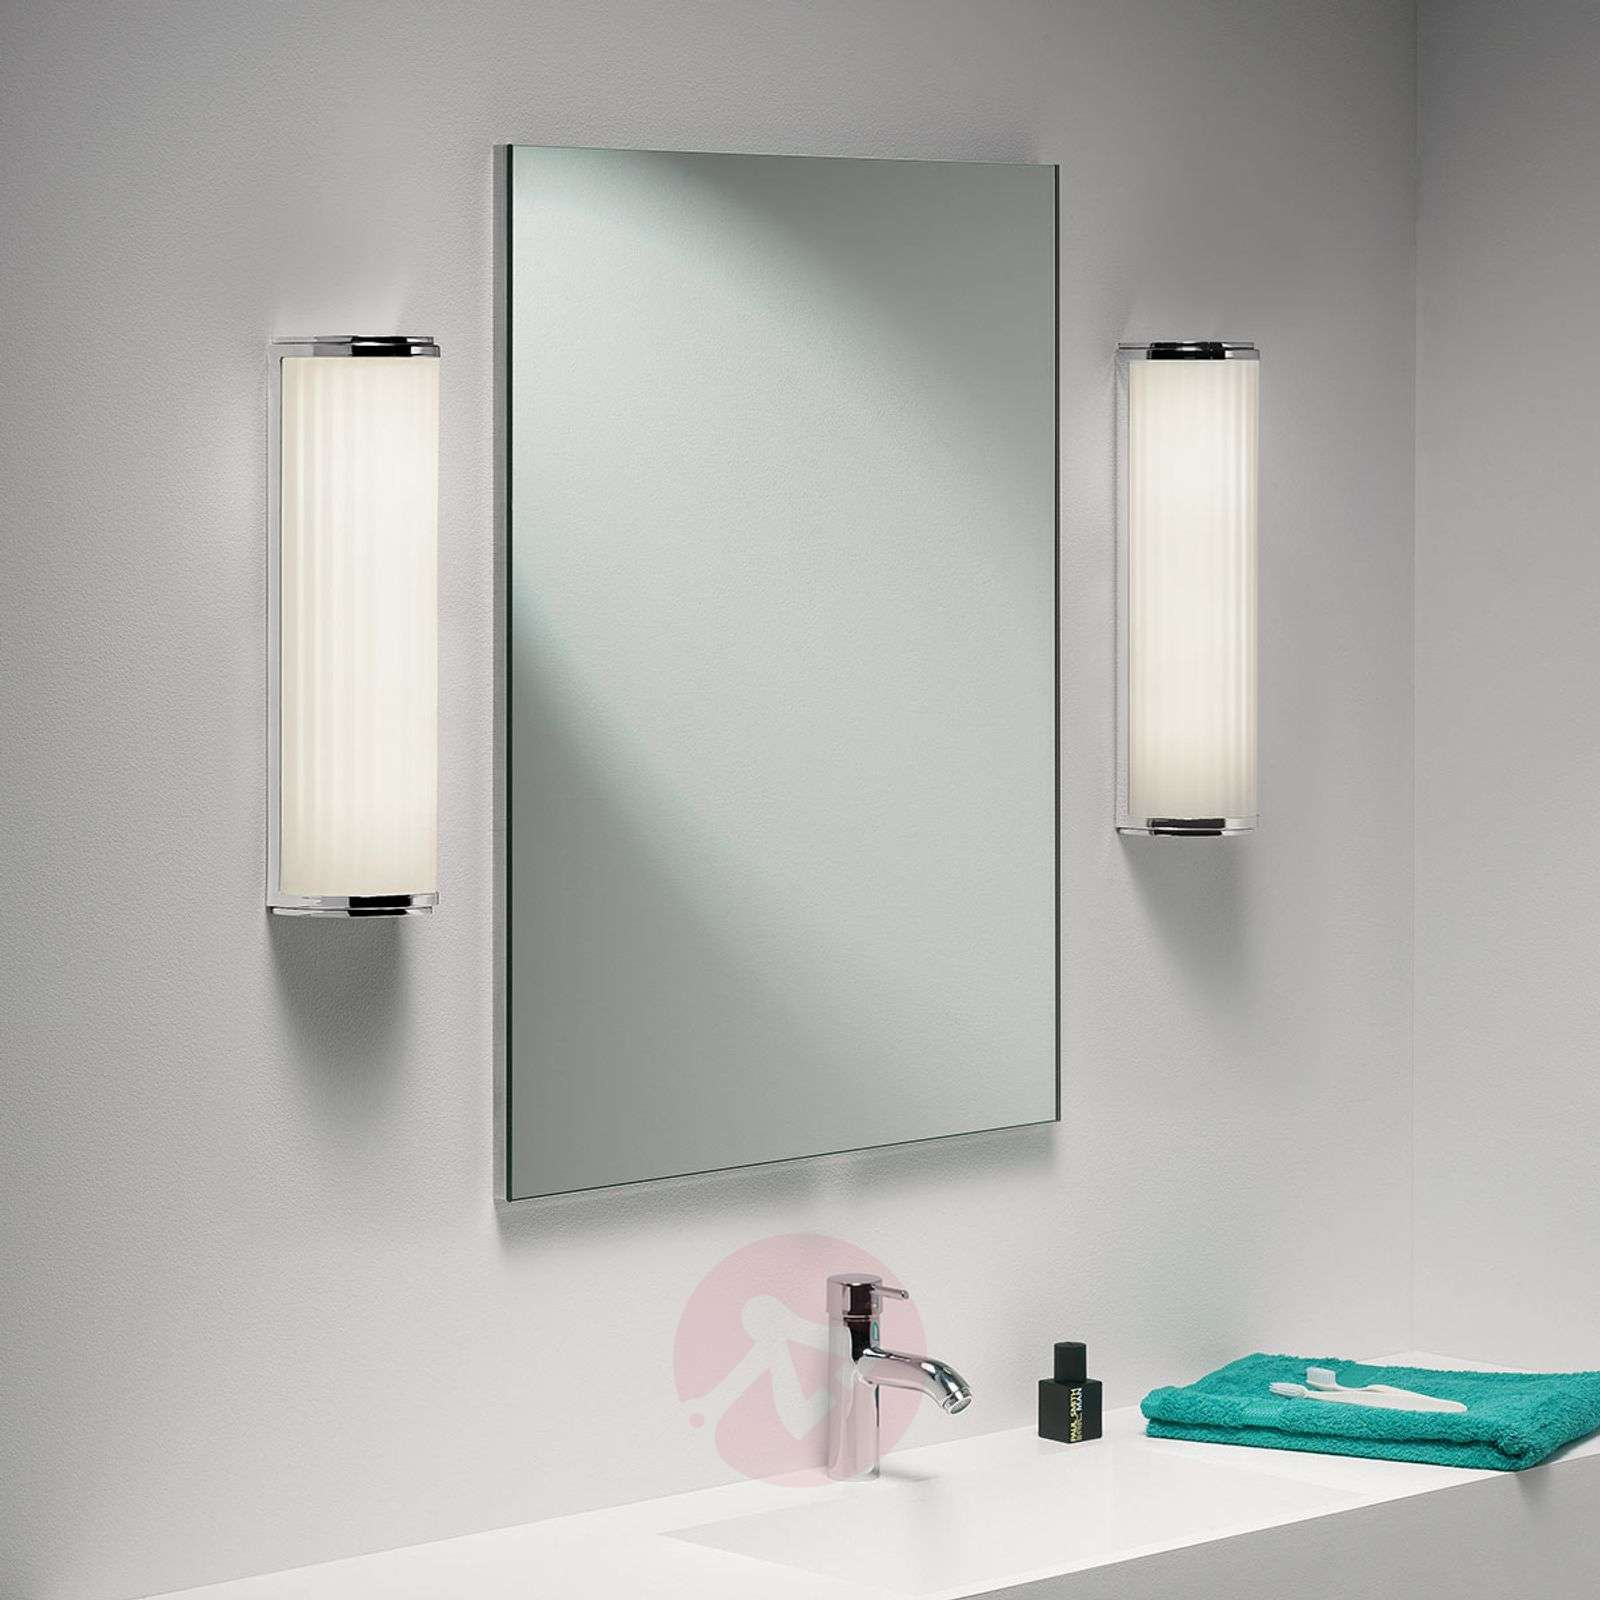 Monza Plus Bathroom Wall Light Attractive-1020291-03